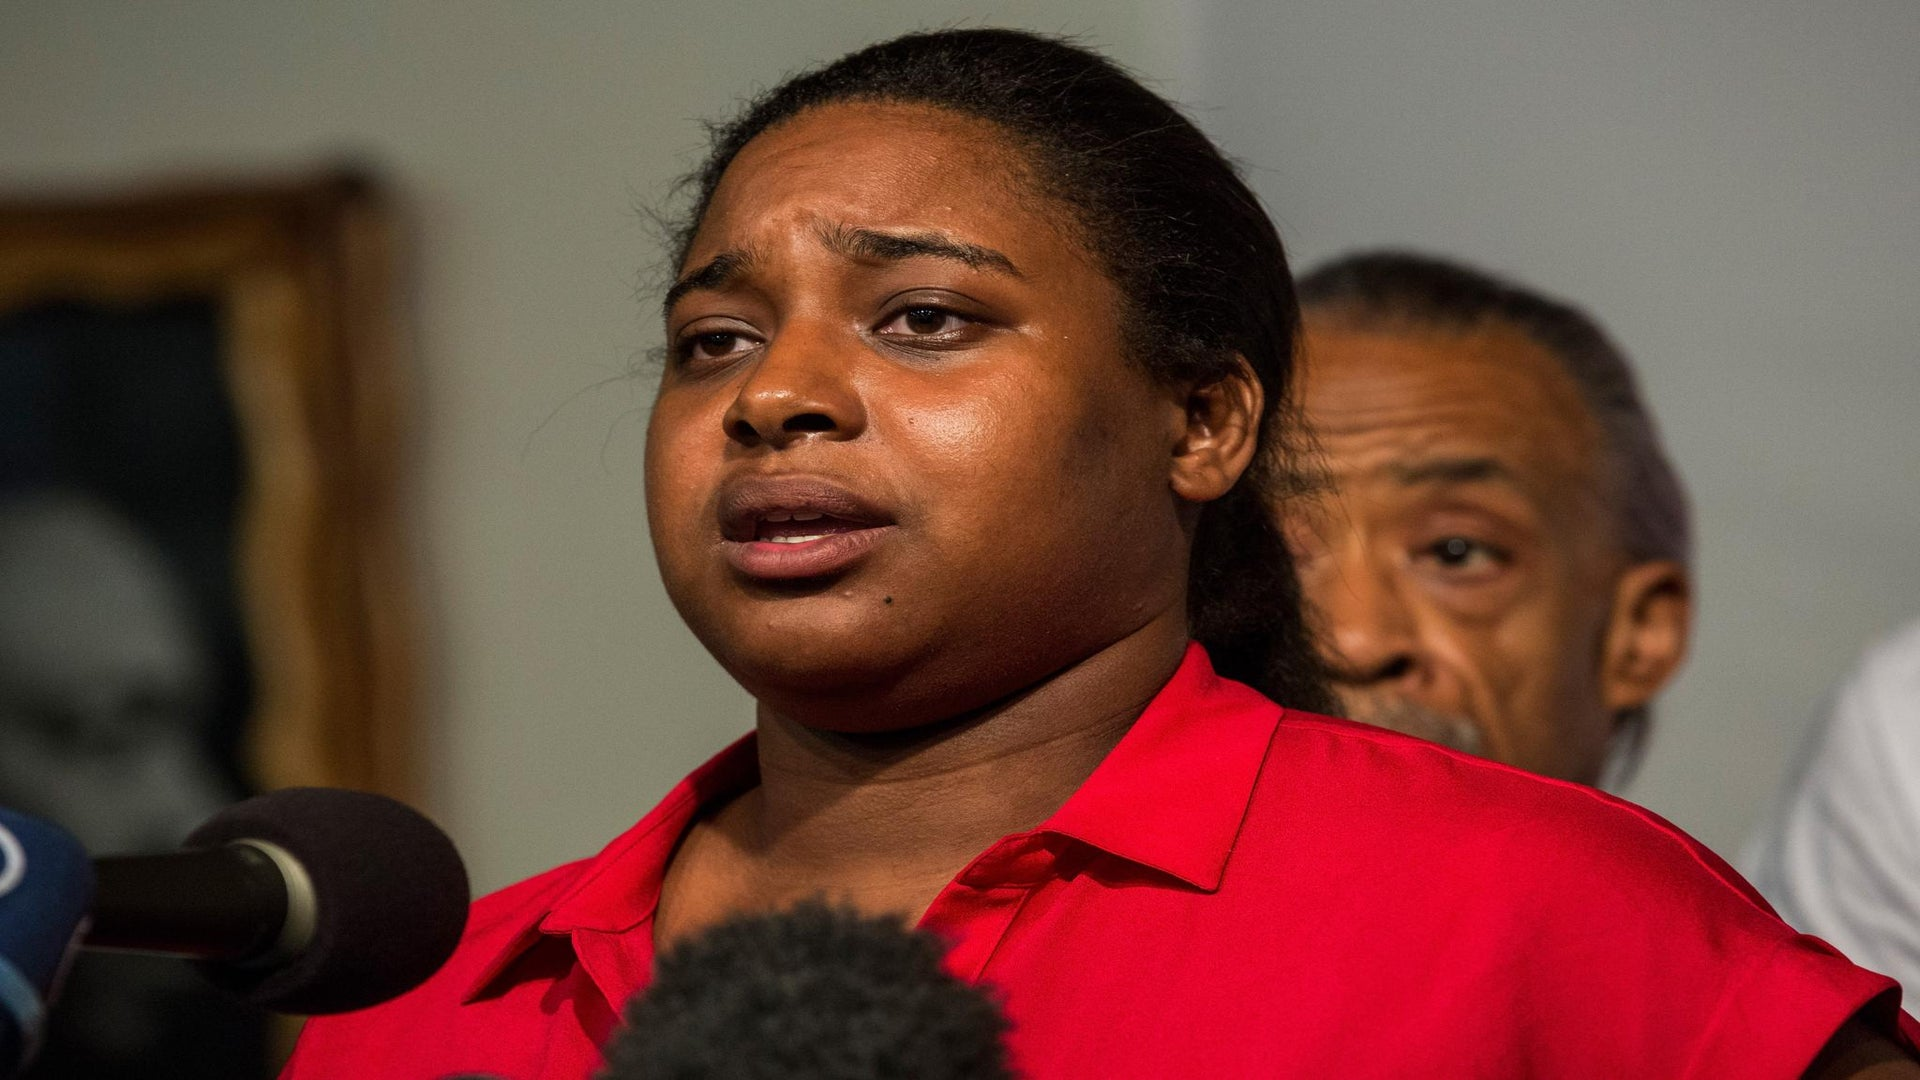 New York City Approves $4M Payment To Family Of Eric Garner